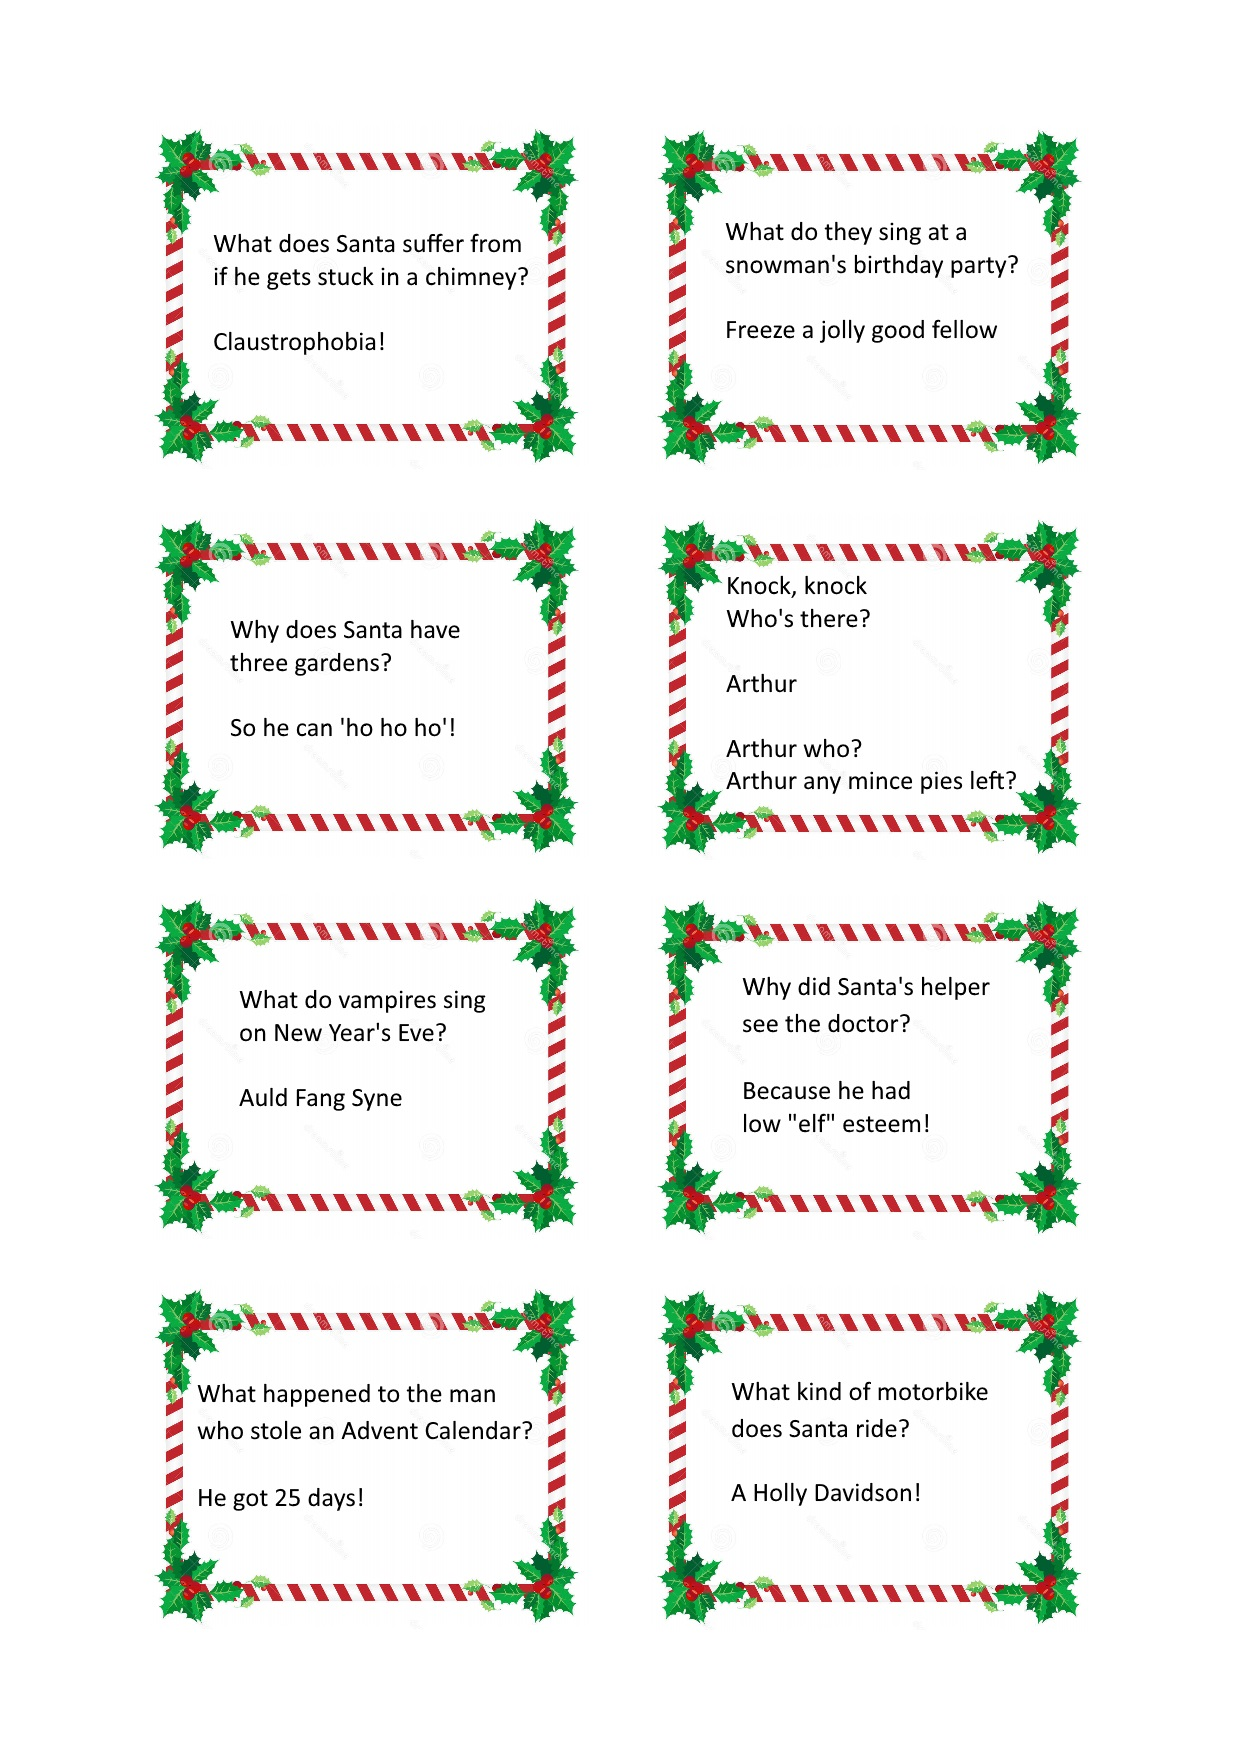 Christmas Cracker Jokes.Christmas Cracker Jokes Free Craft Downloads